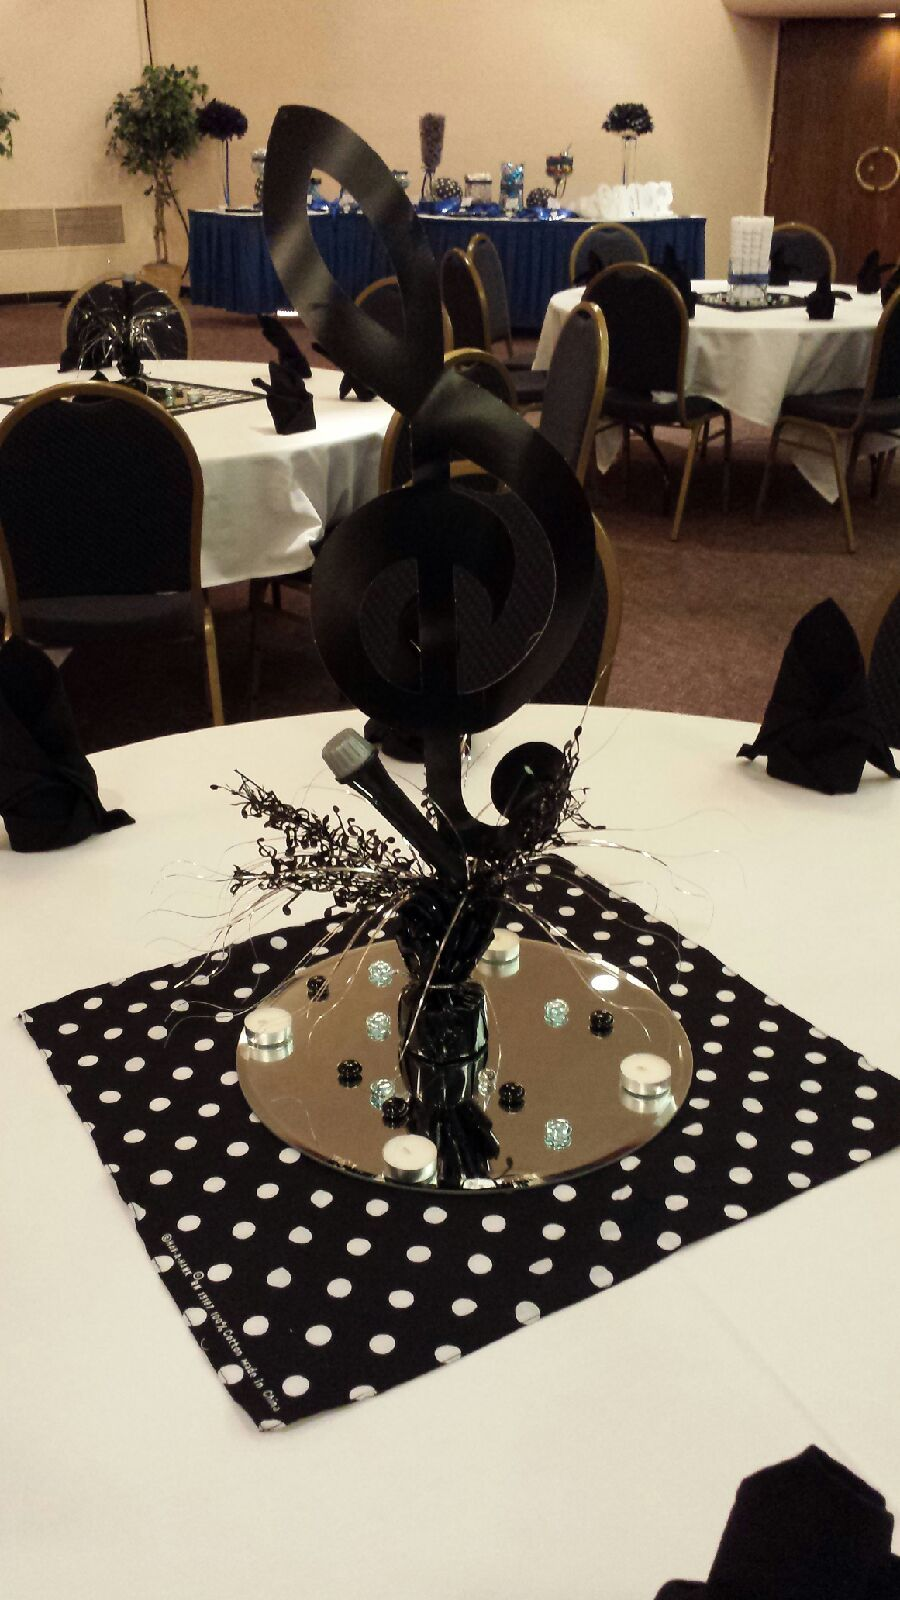 Choir banquet black and white centerpiece. Music note